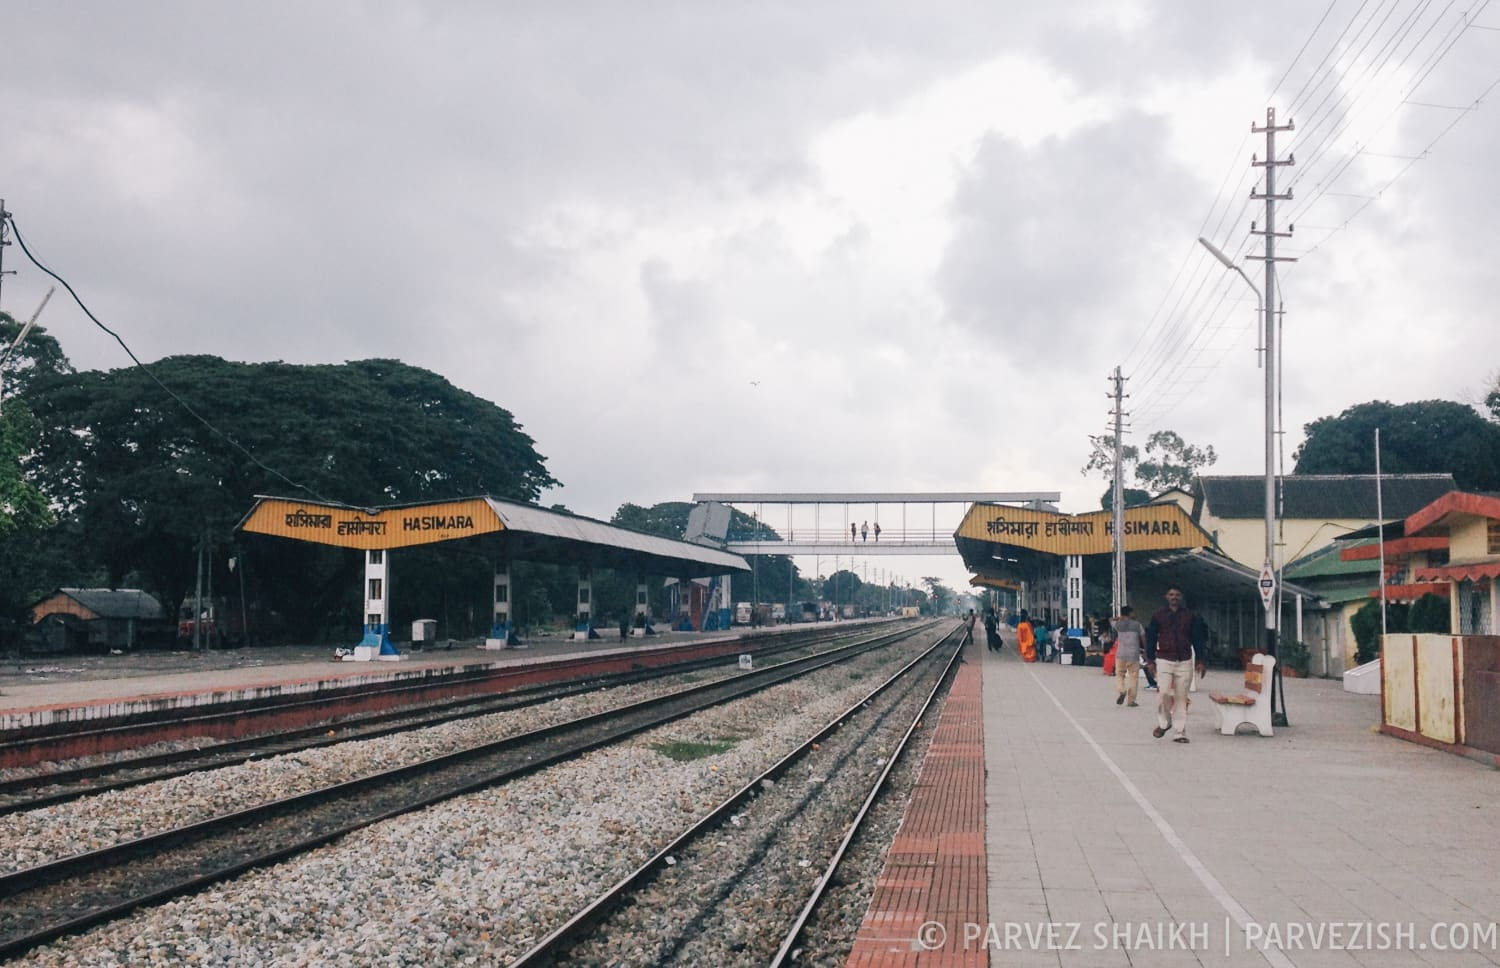 Hasimara Railway Station, West Bengal